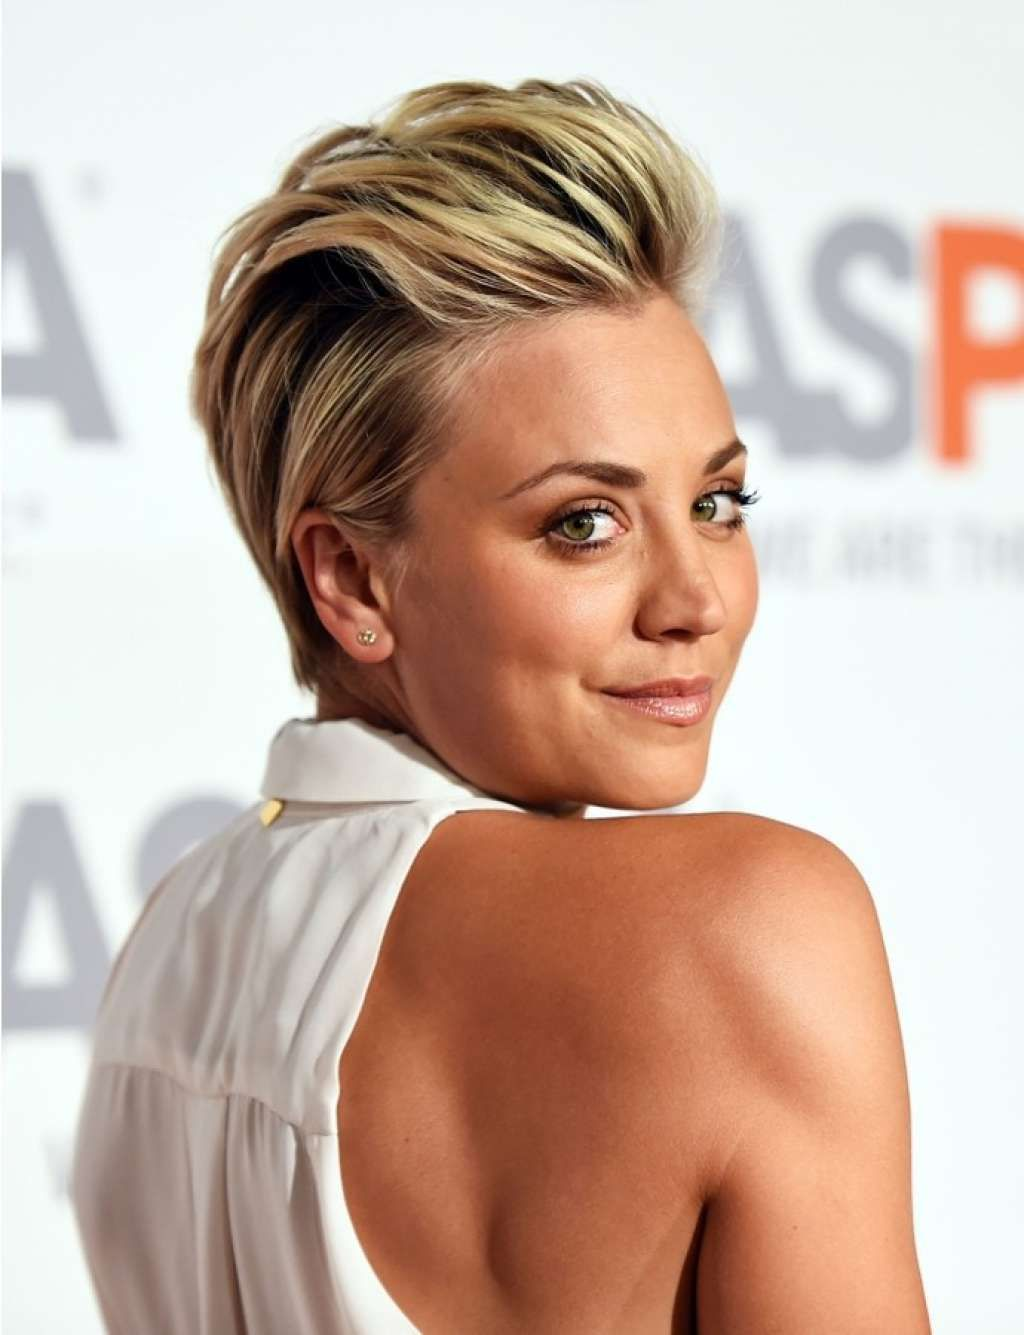 Short slicked back hairstyle onelady hair hairs